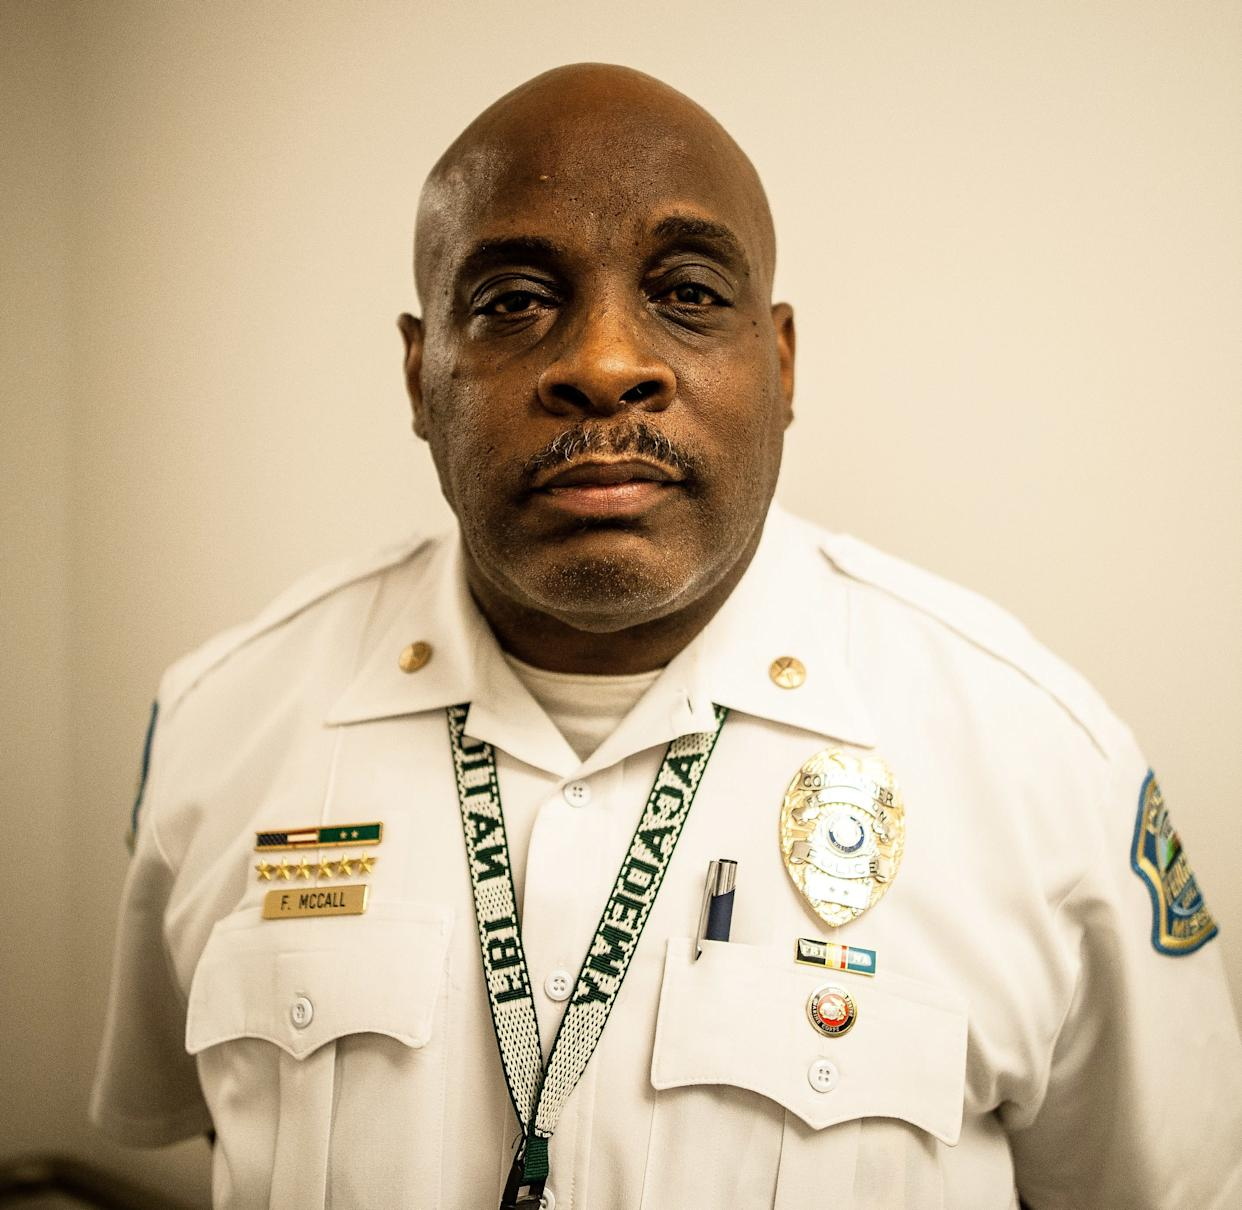 Frank McCall, a police commander in Ferguson, has overseen progress on the consent decree. (Photo: Joseph Rushmore for HuffPost)